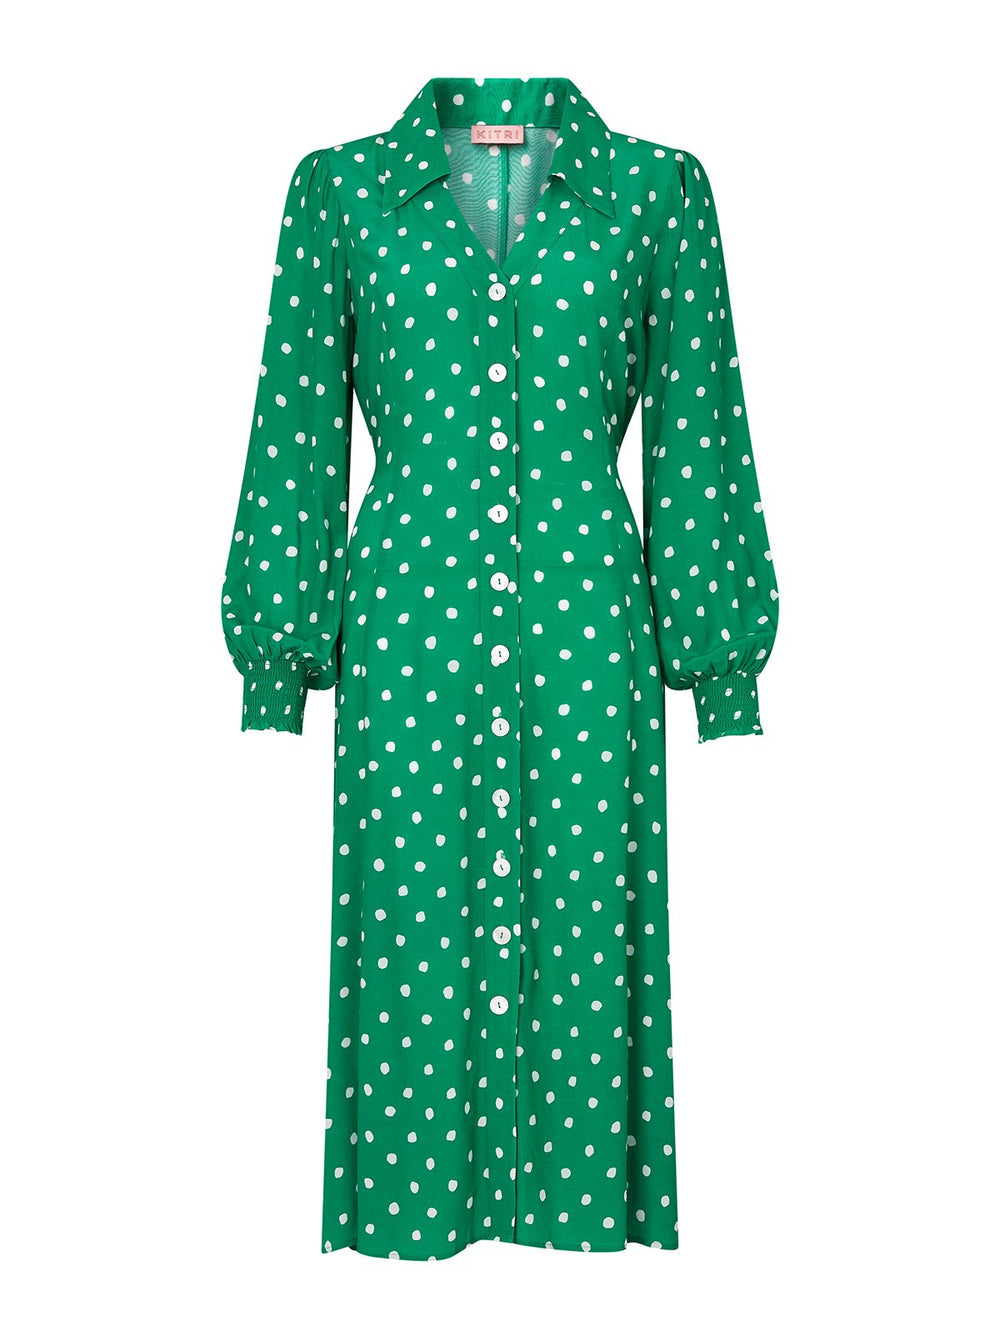 Sylvie Green Polka Dot Shirt Dress by KITRI Studio